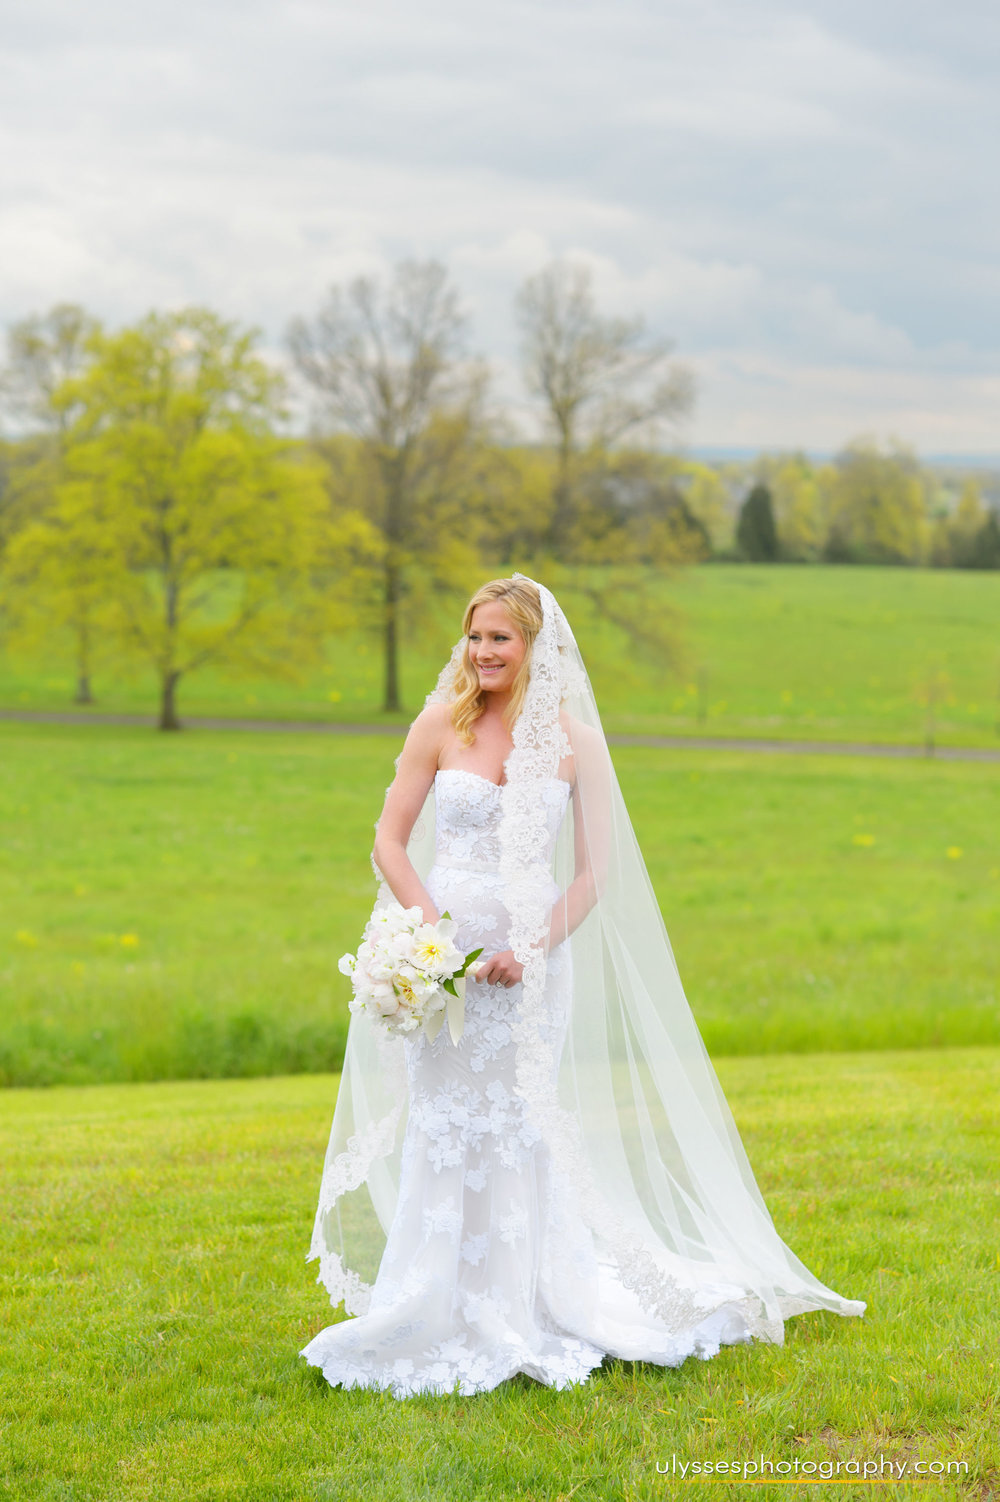 08 Mira Zwillinger Bridal At Home Dunwalke Farm Wedding.jpg